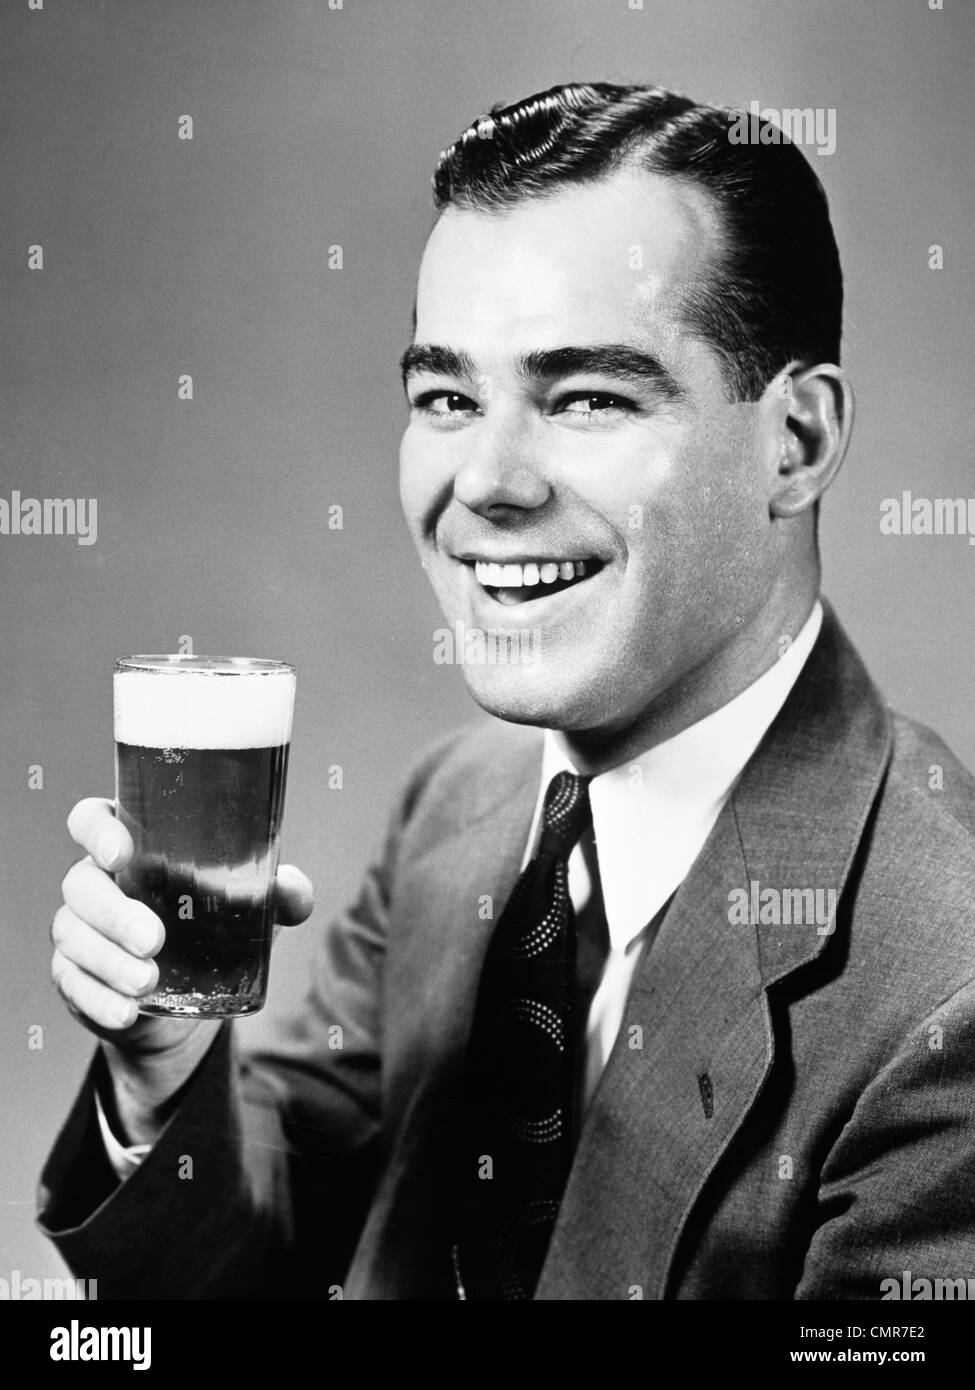 1940s SMILING MAN HOLDING GLASS OF BEER - Stock Image